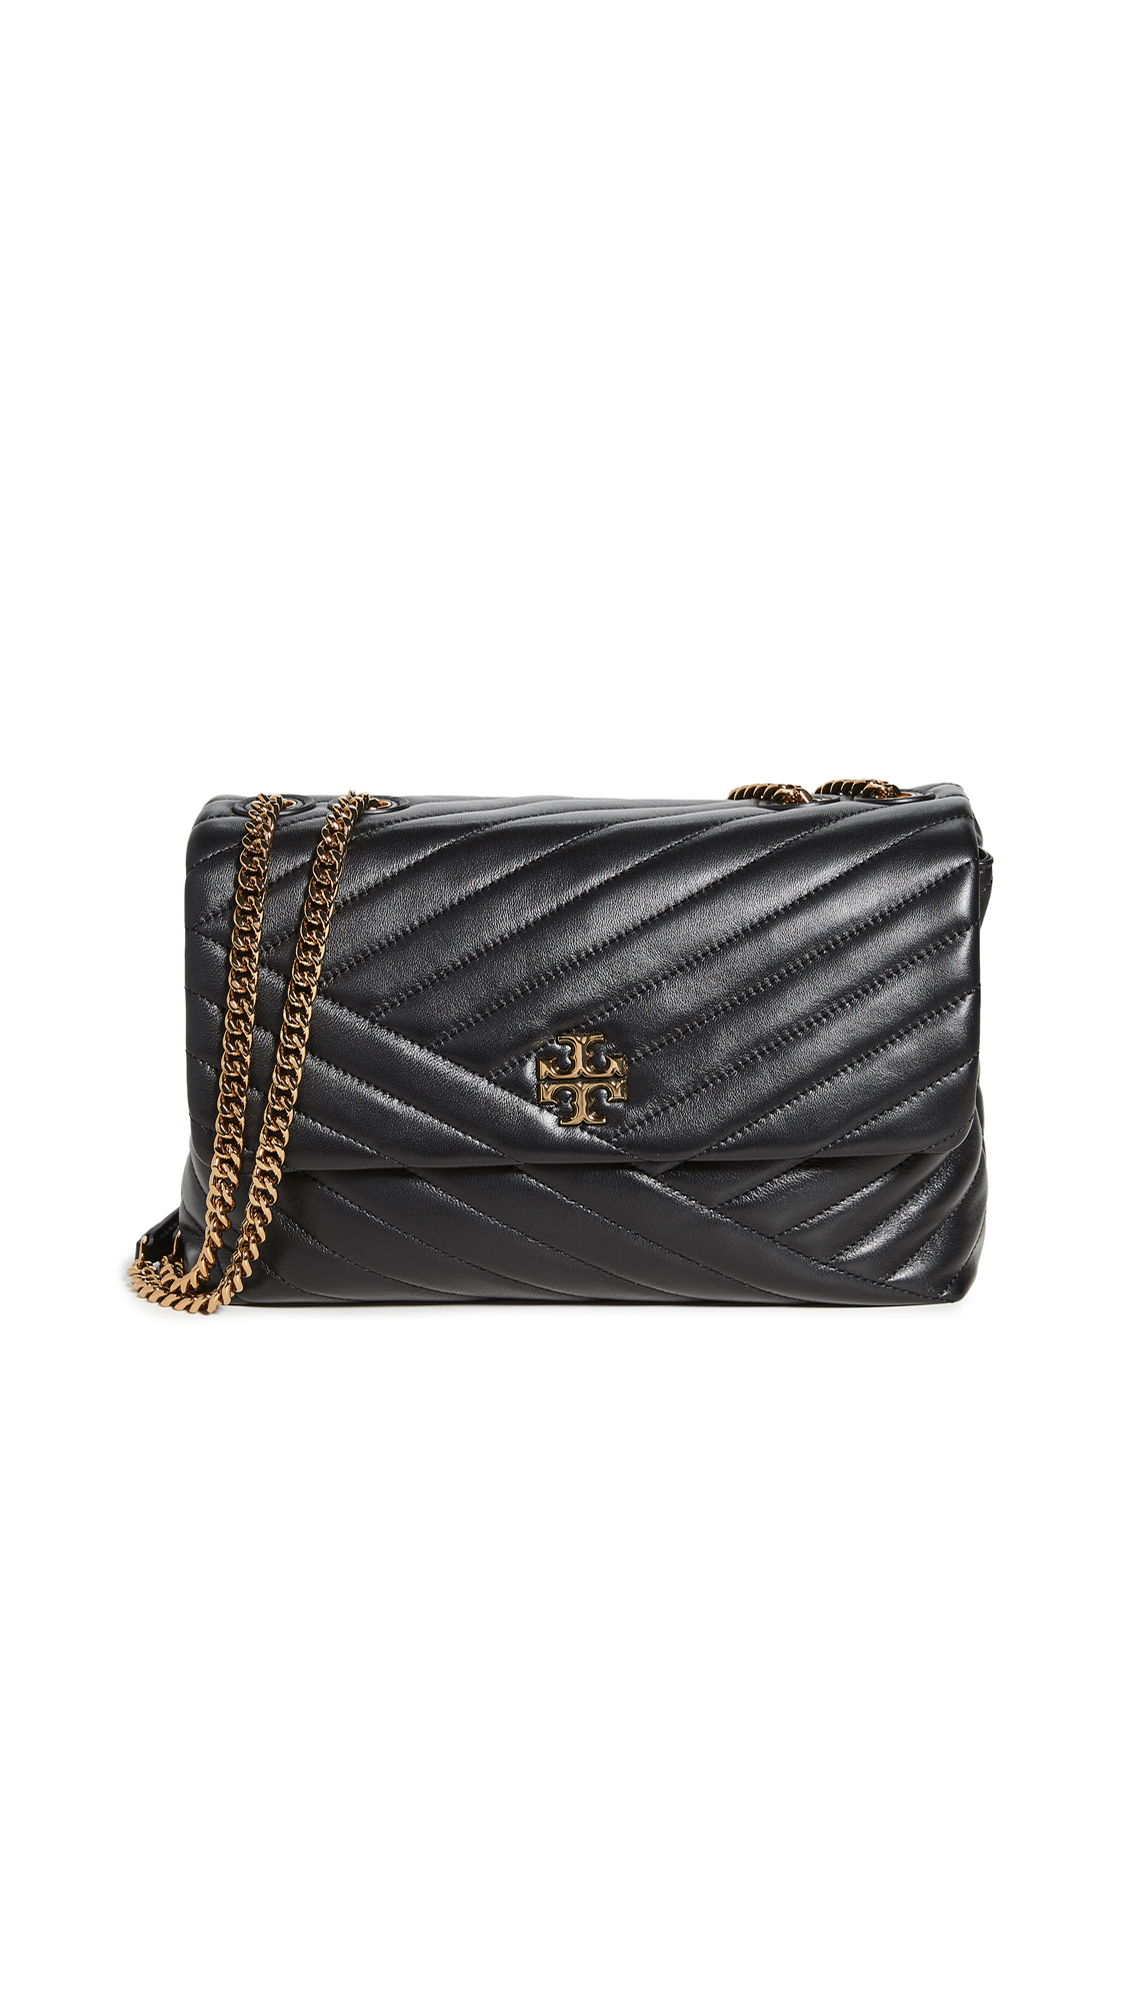 Tory Burch Kira Chevron Convertible Shoulder Bag